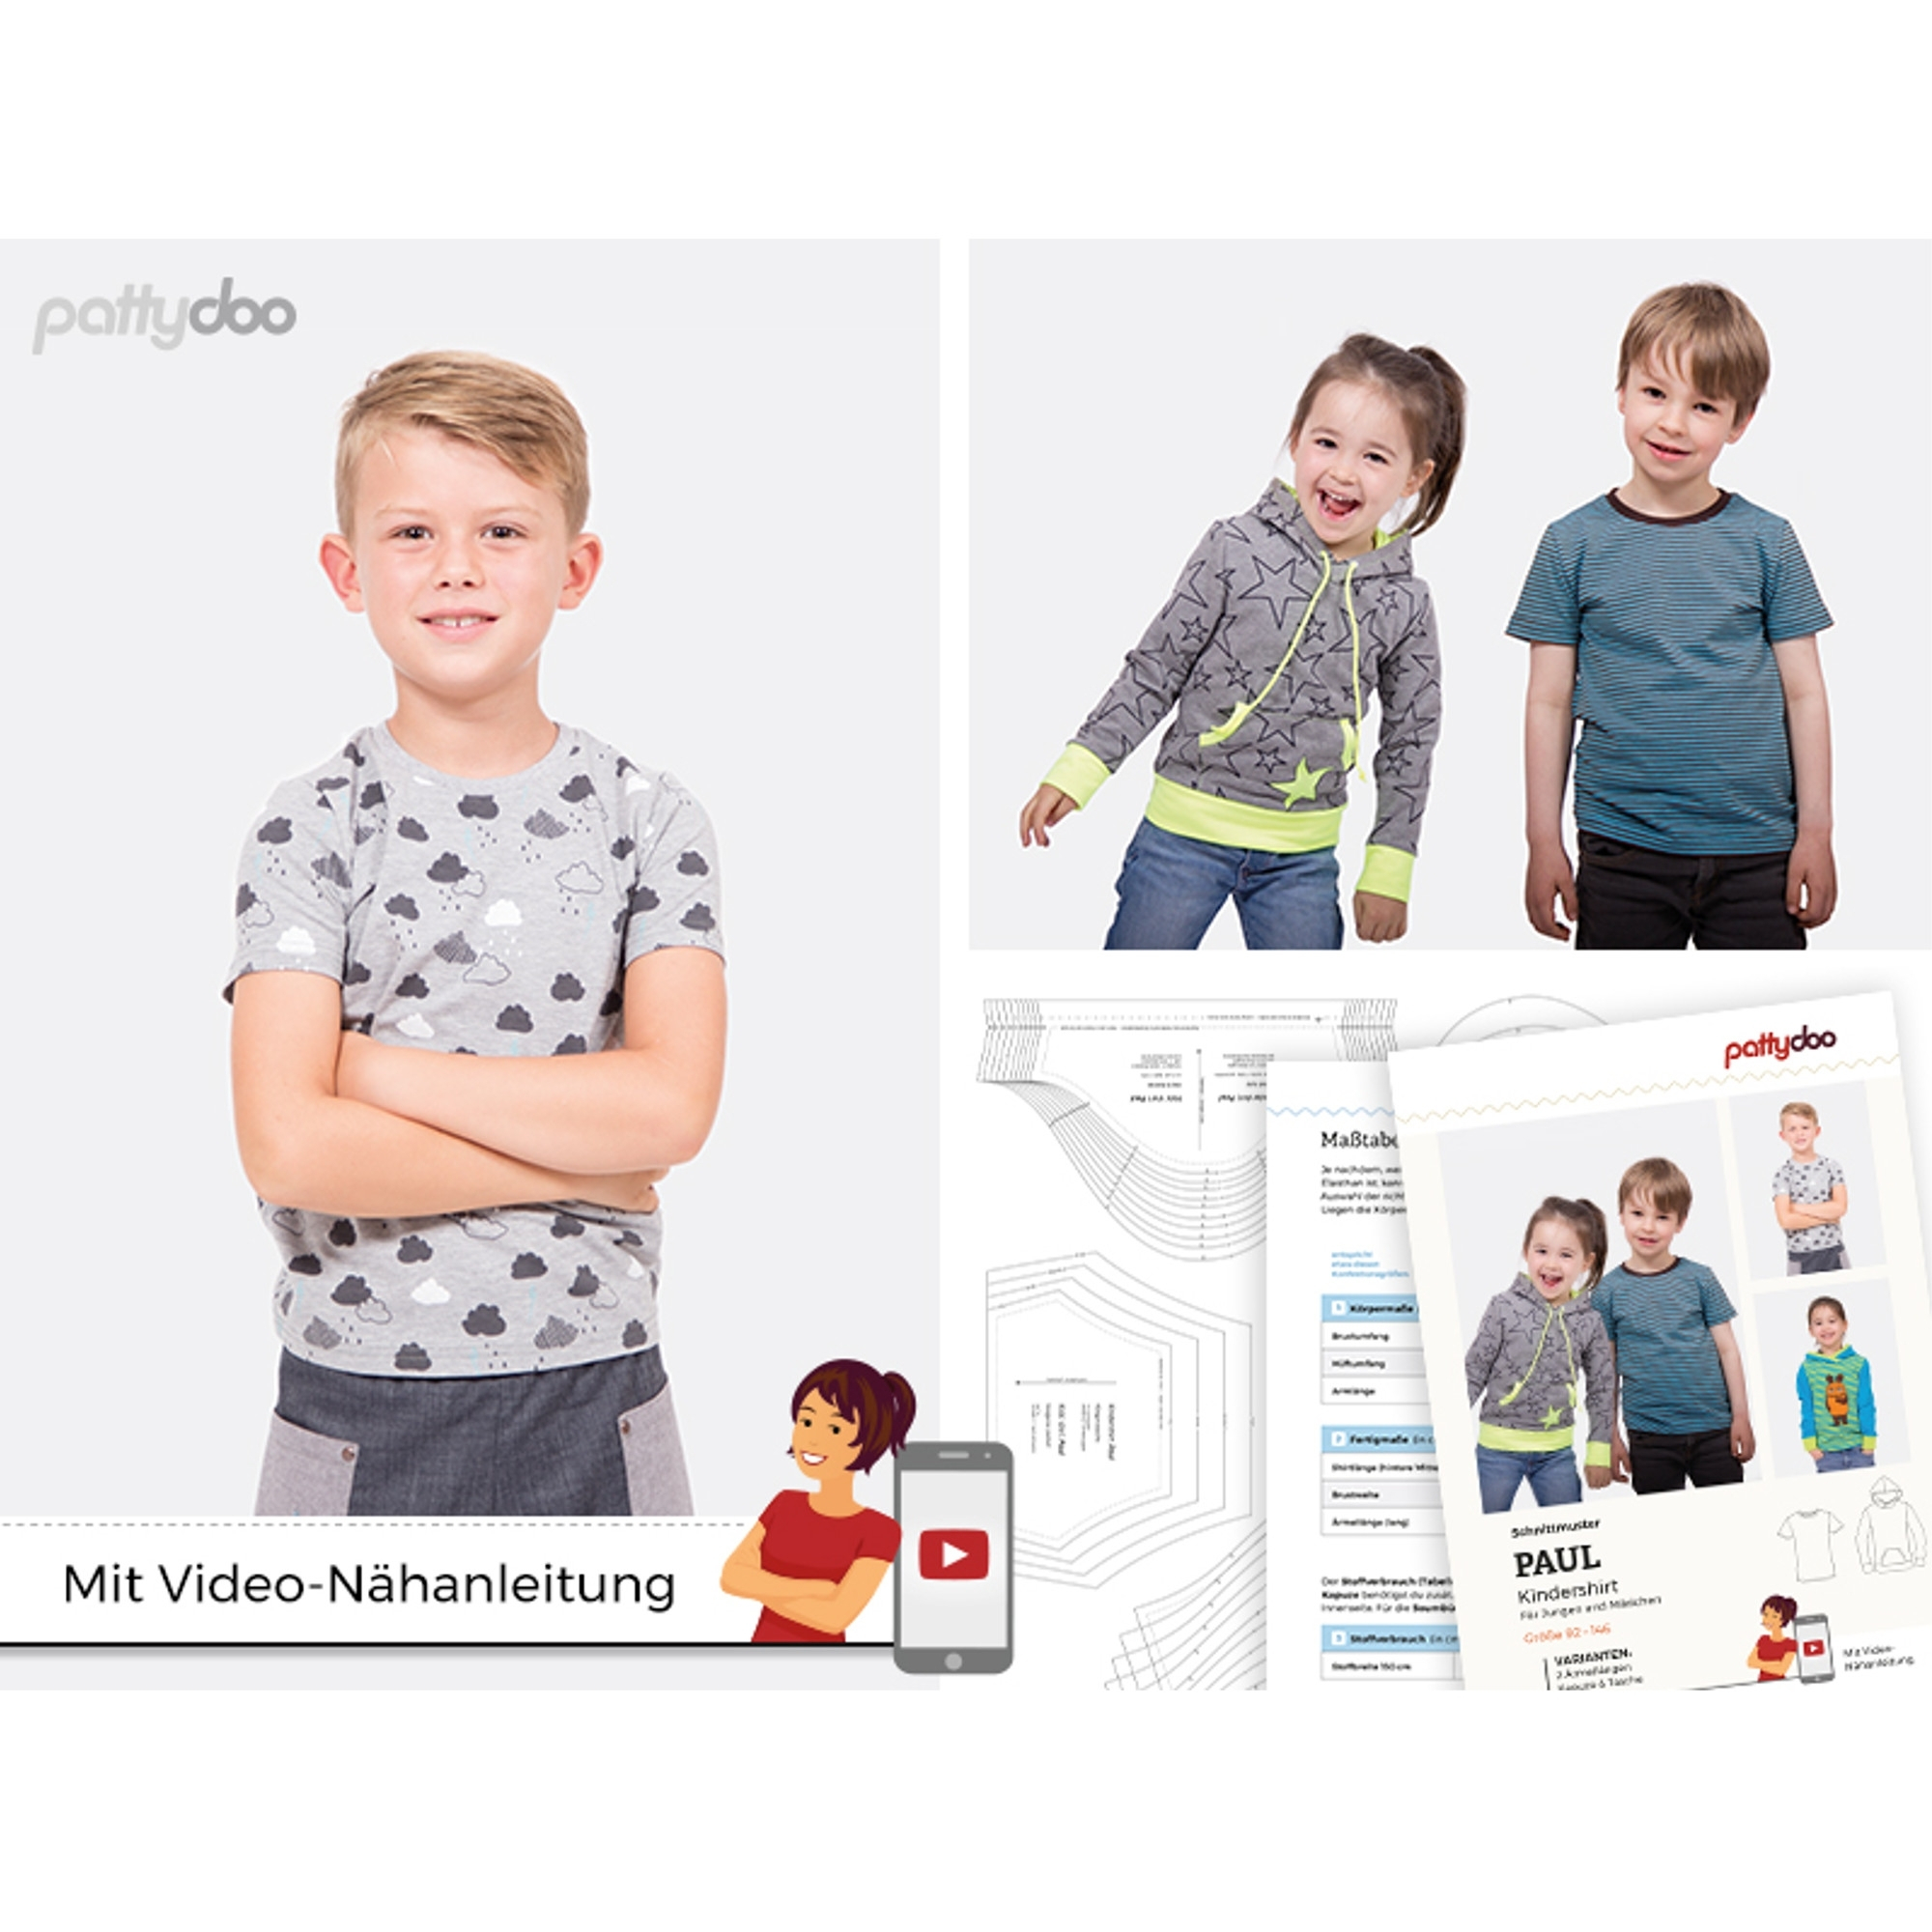 PattyDoo Kindershirt Paul Papierschnittmuster | PATTYDOO-PAUL |